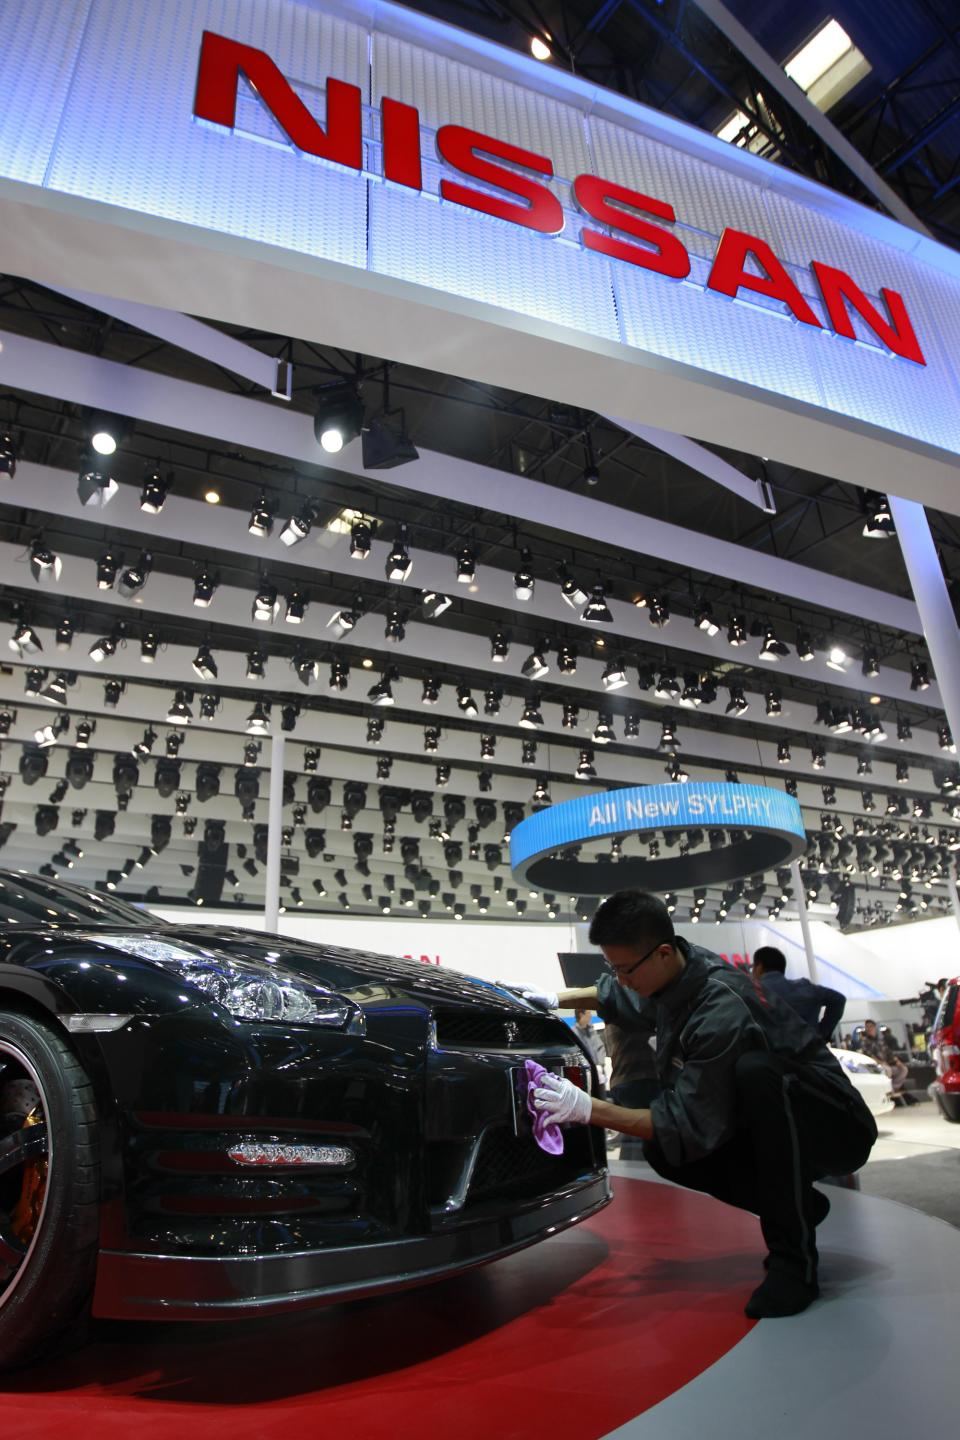 A worker cleans Nissan GT-R at the Beijing International Auto Exhibition in Beijing, China, Monday, April 23, 2012. (AP Photo/ Vincent Thian)